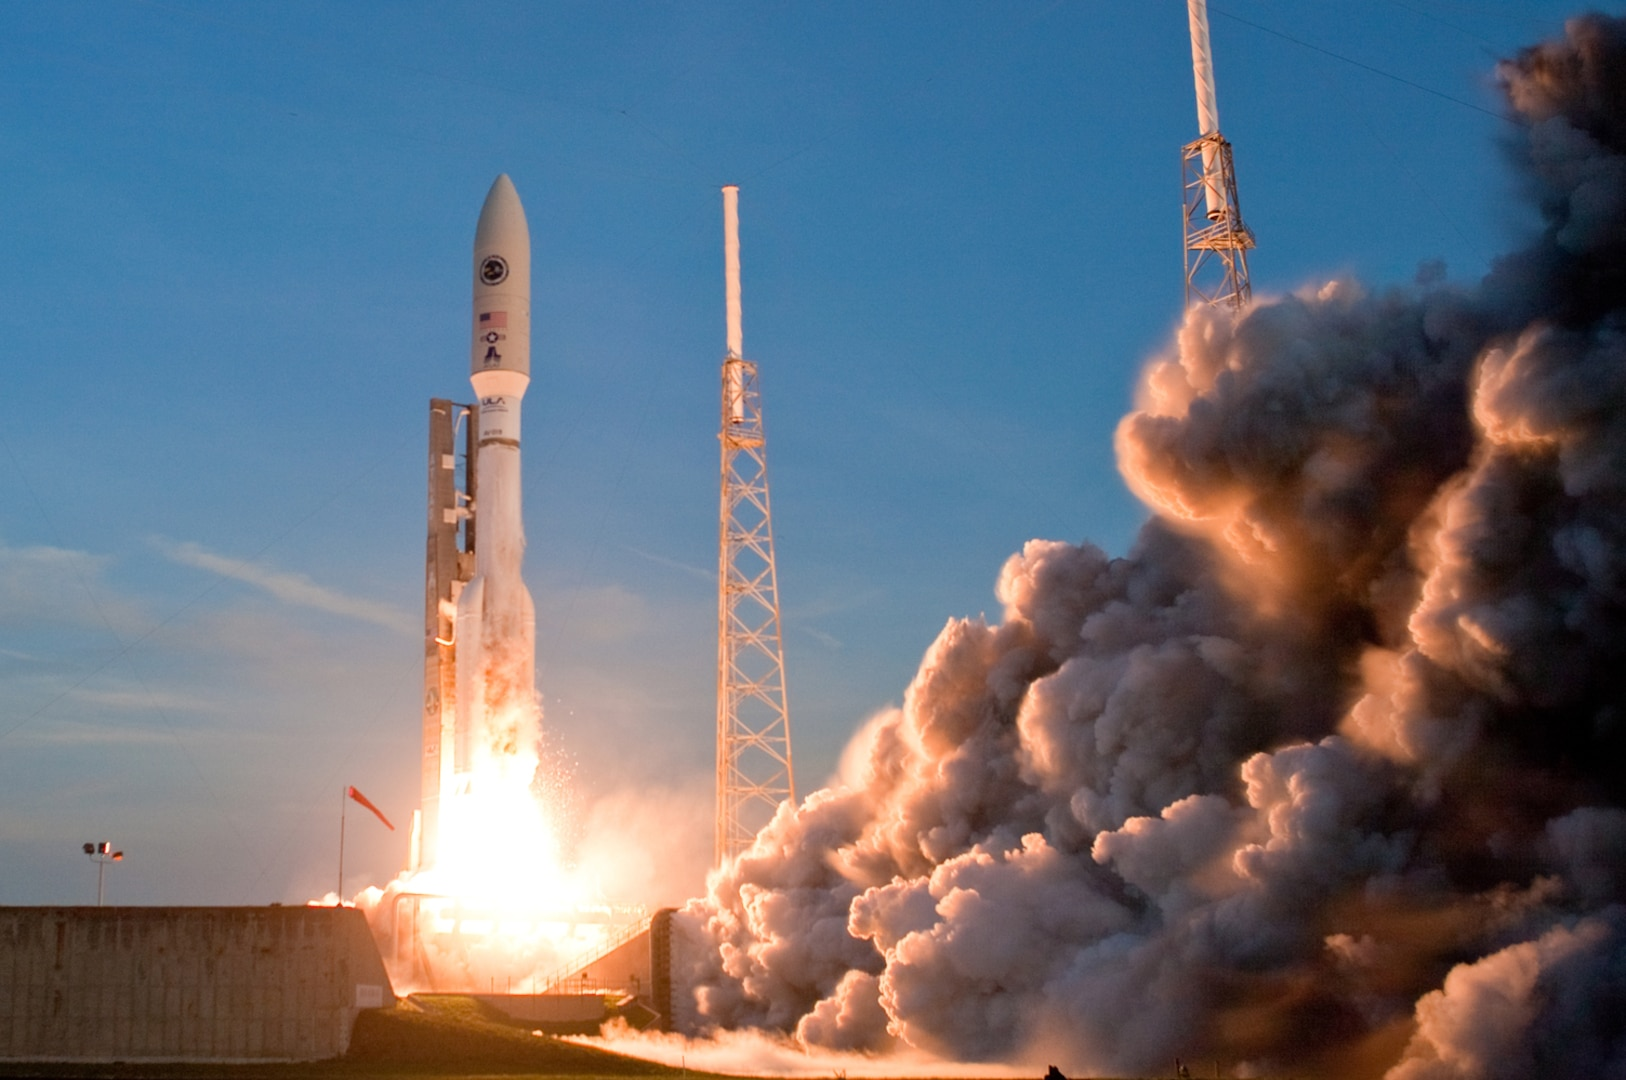 A rocket lifts off from a launch pad